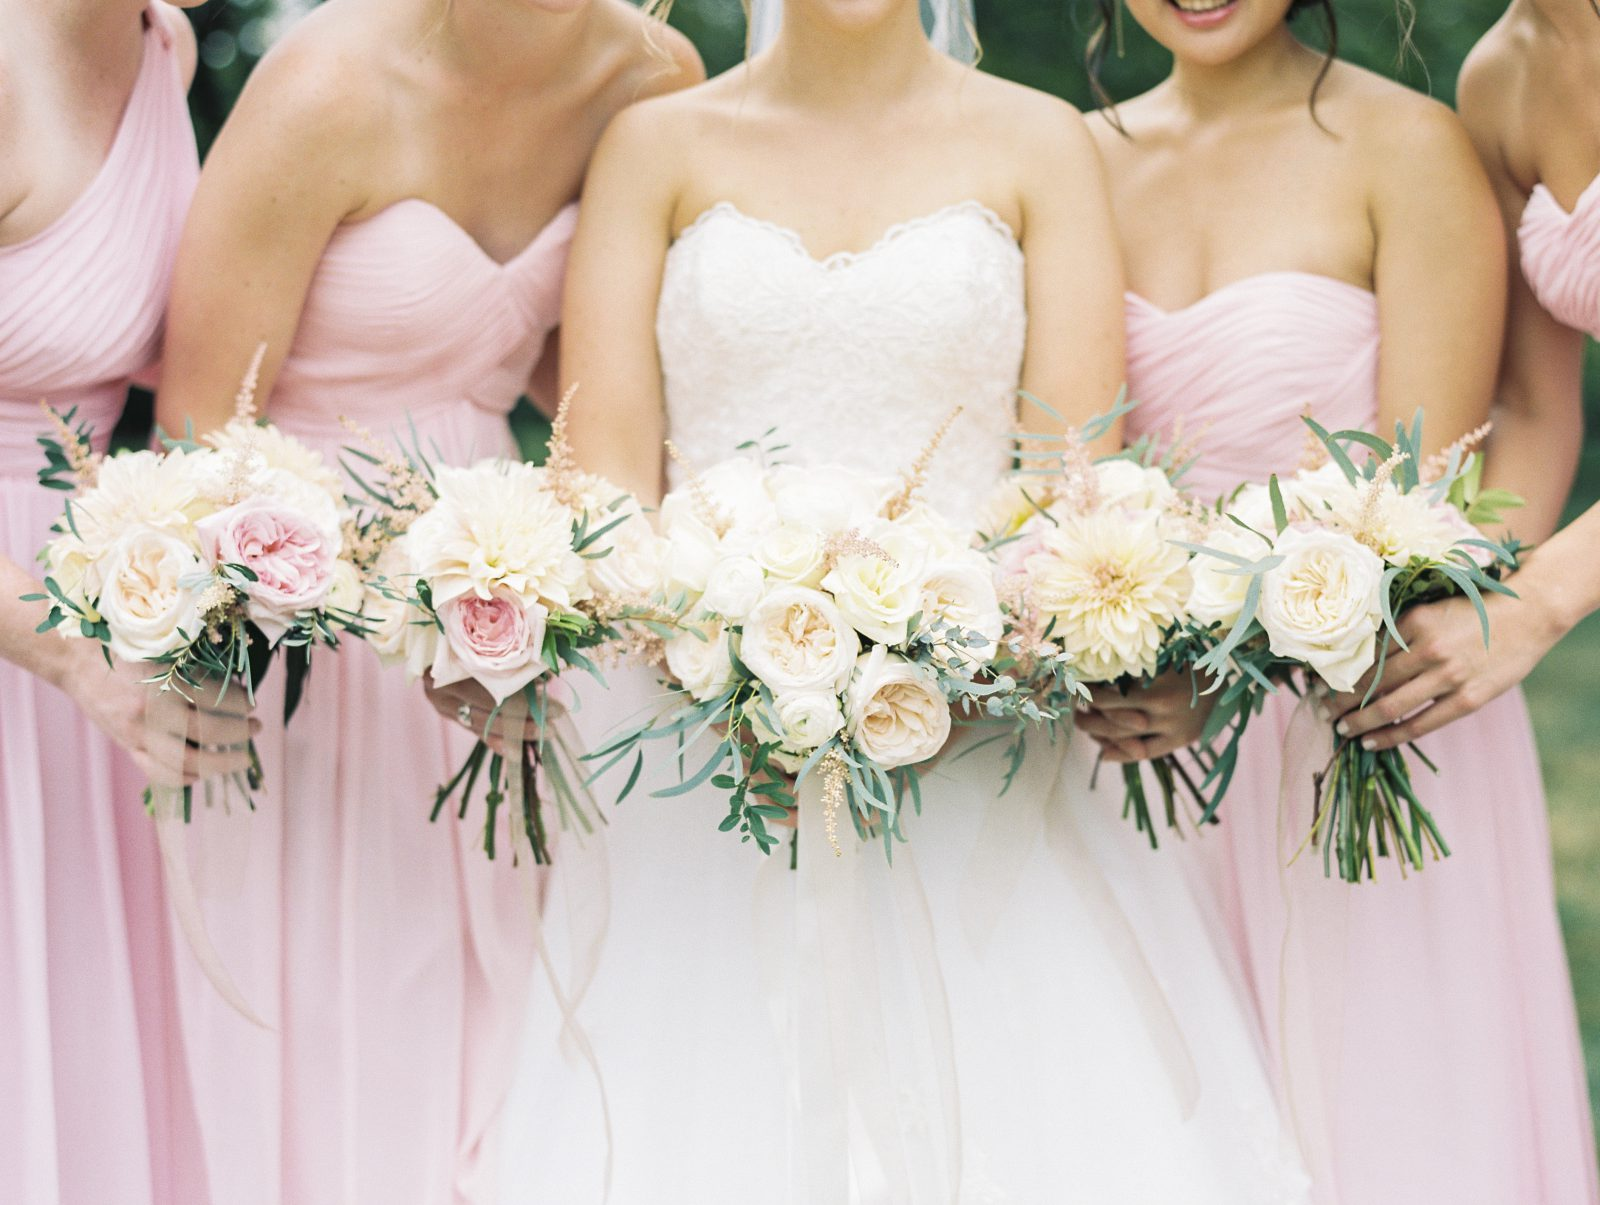 bride and bridesmaids carrying blush garden rose bouquets by fresh designs florist at duportail house wedding near philadelphia